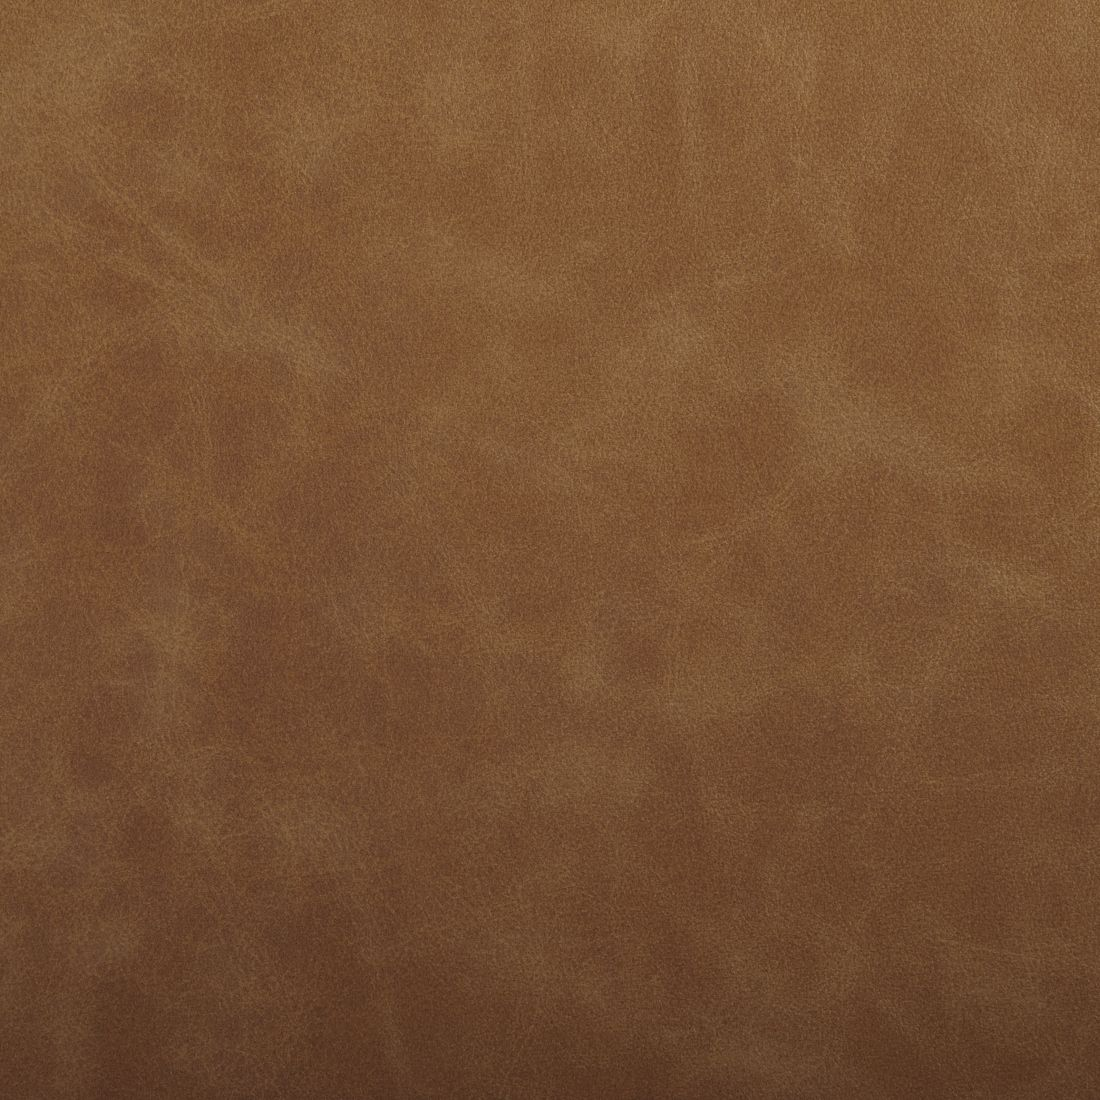 Brown Color Leather Grain And Plain Or Solid Pattern Polyurethane And Vinyl Type Upholstery Fabric Called R7 Sofa Fabric Texture Upholstery Fabric Kovi Fabrics